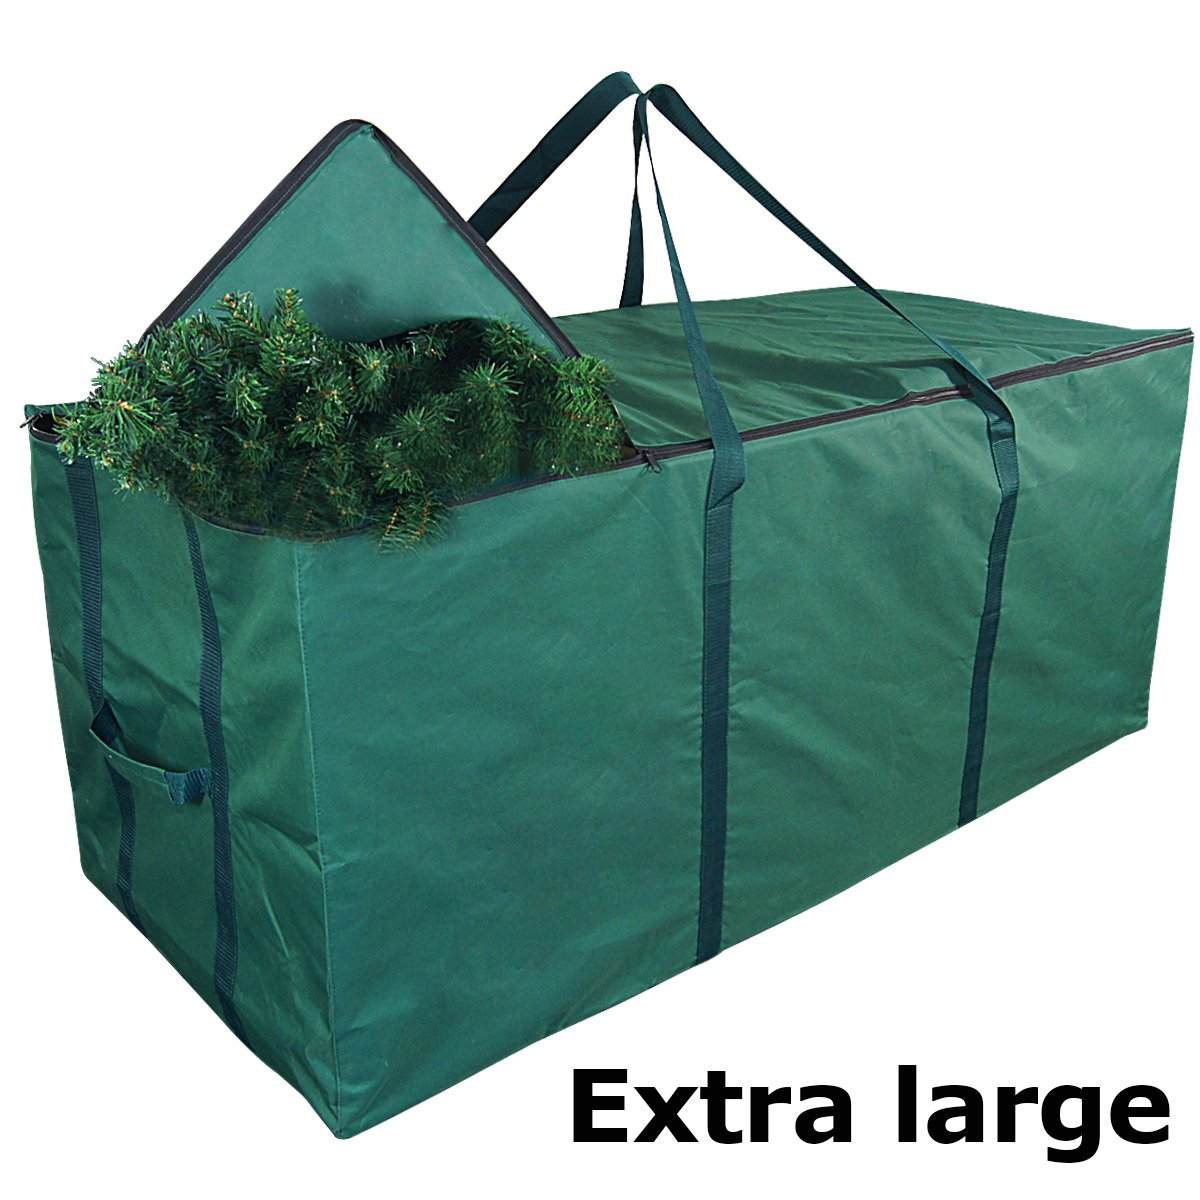 MelonBoat Waterproof Oxford Cloth Green Christmas Tree Storage Bag, Extra Large for 5'-9' Artificial Trees